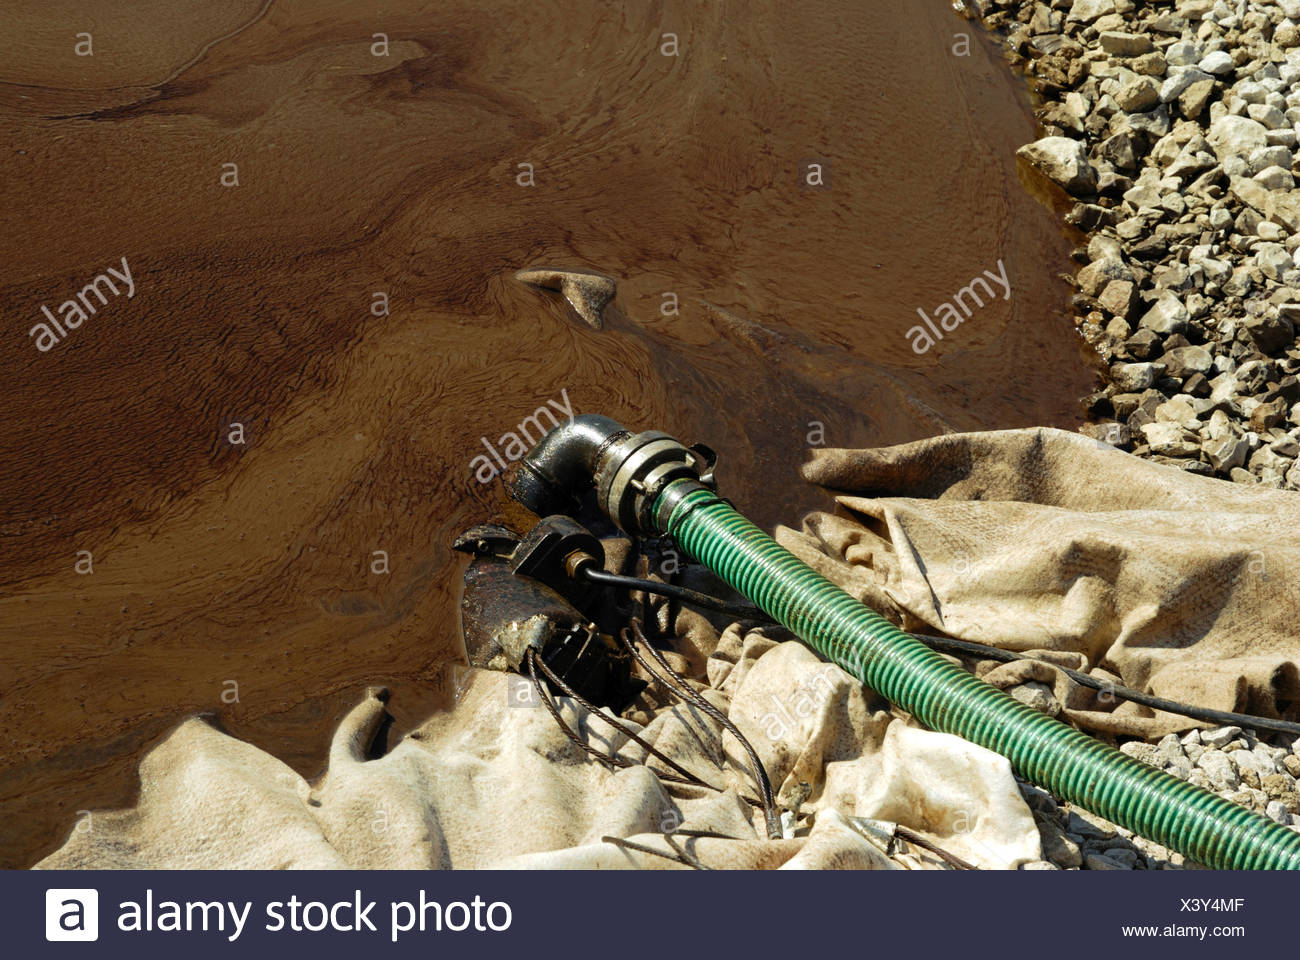 Heating oil floating on ground water, environmental cleanup operation, Baden-Wuerttemberg, Germany - Stock Image